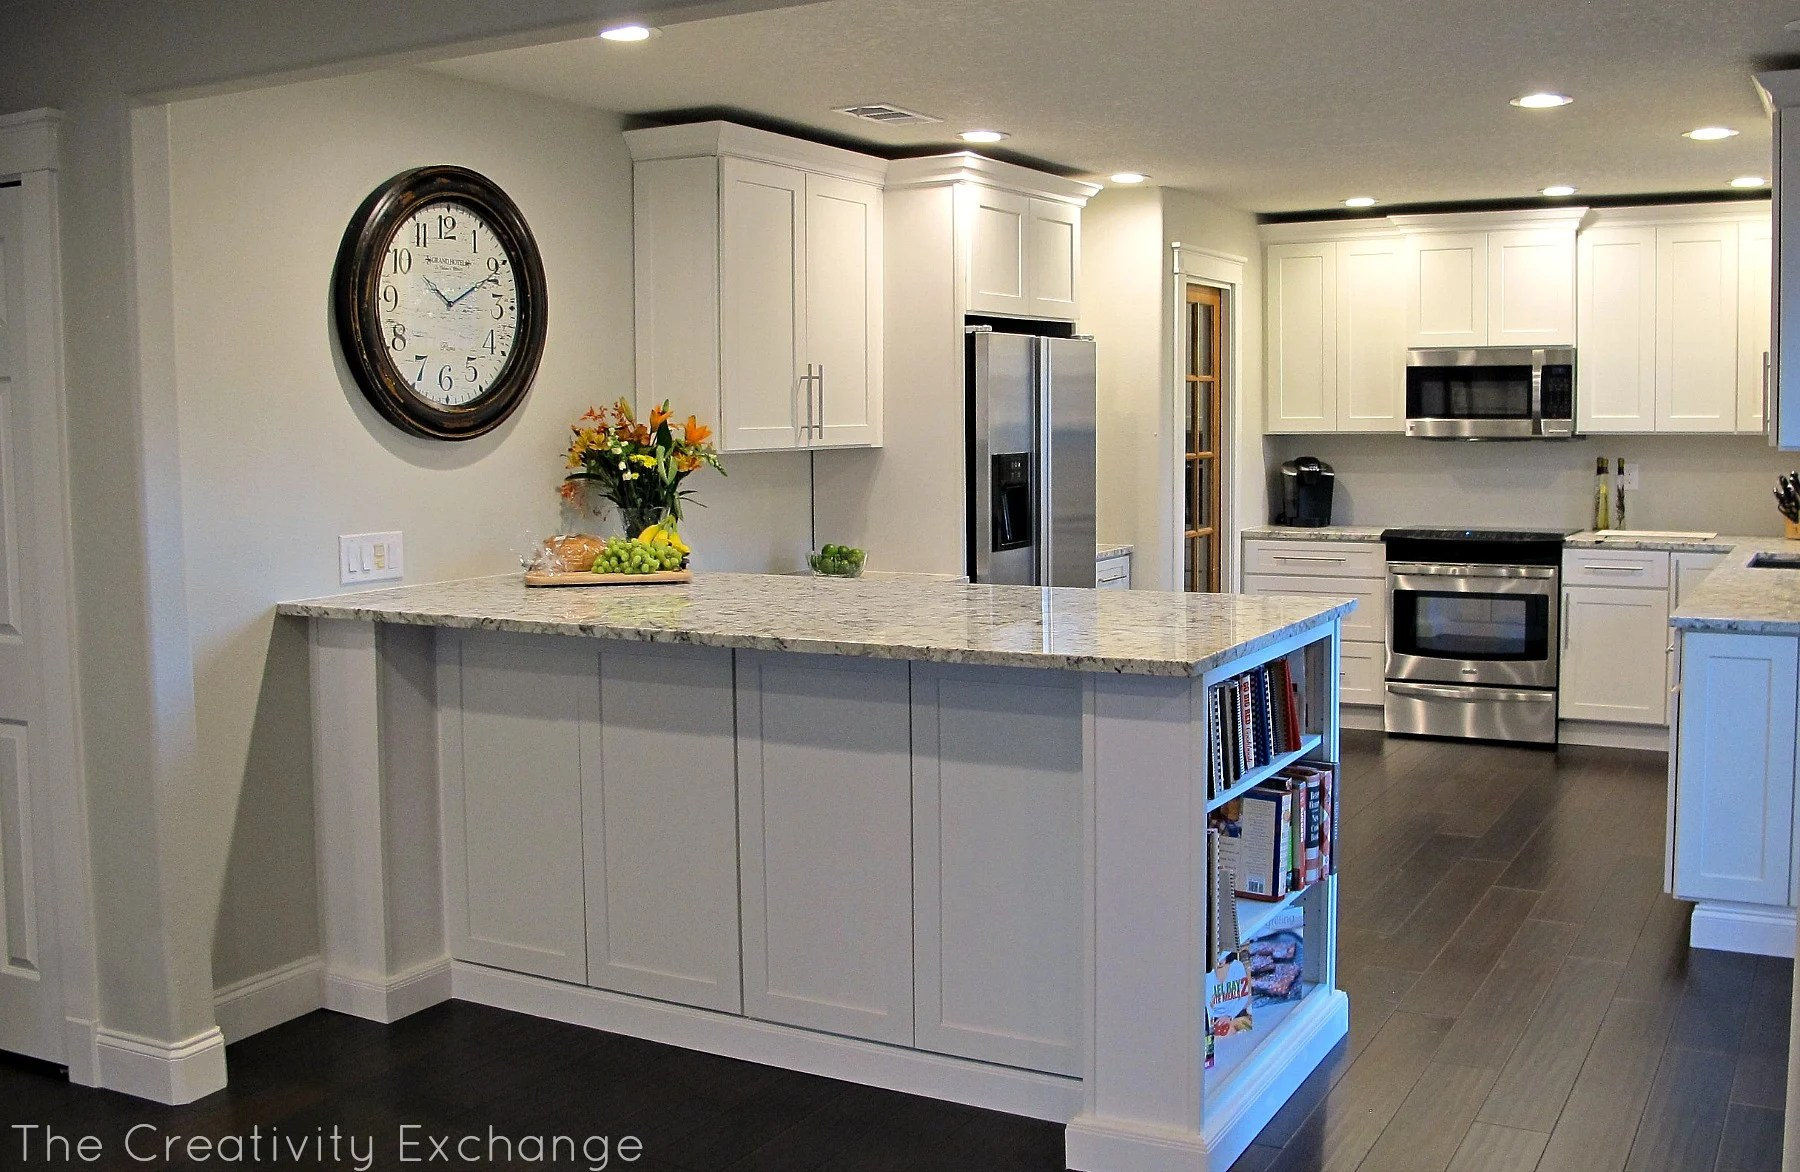 cousin franks amazing kitchen remodel before after budget kitchen remodel Amazing before after kitchen remodel The Creativity Exchange